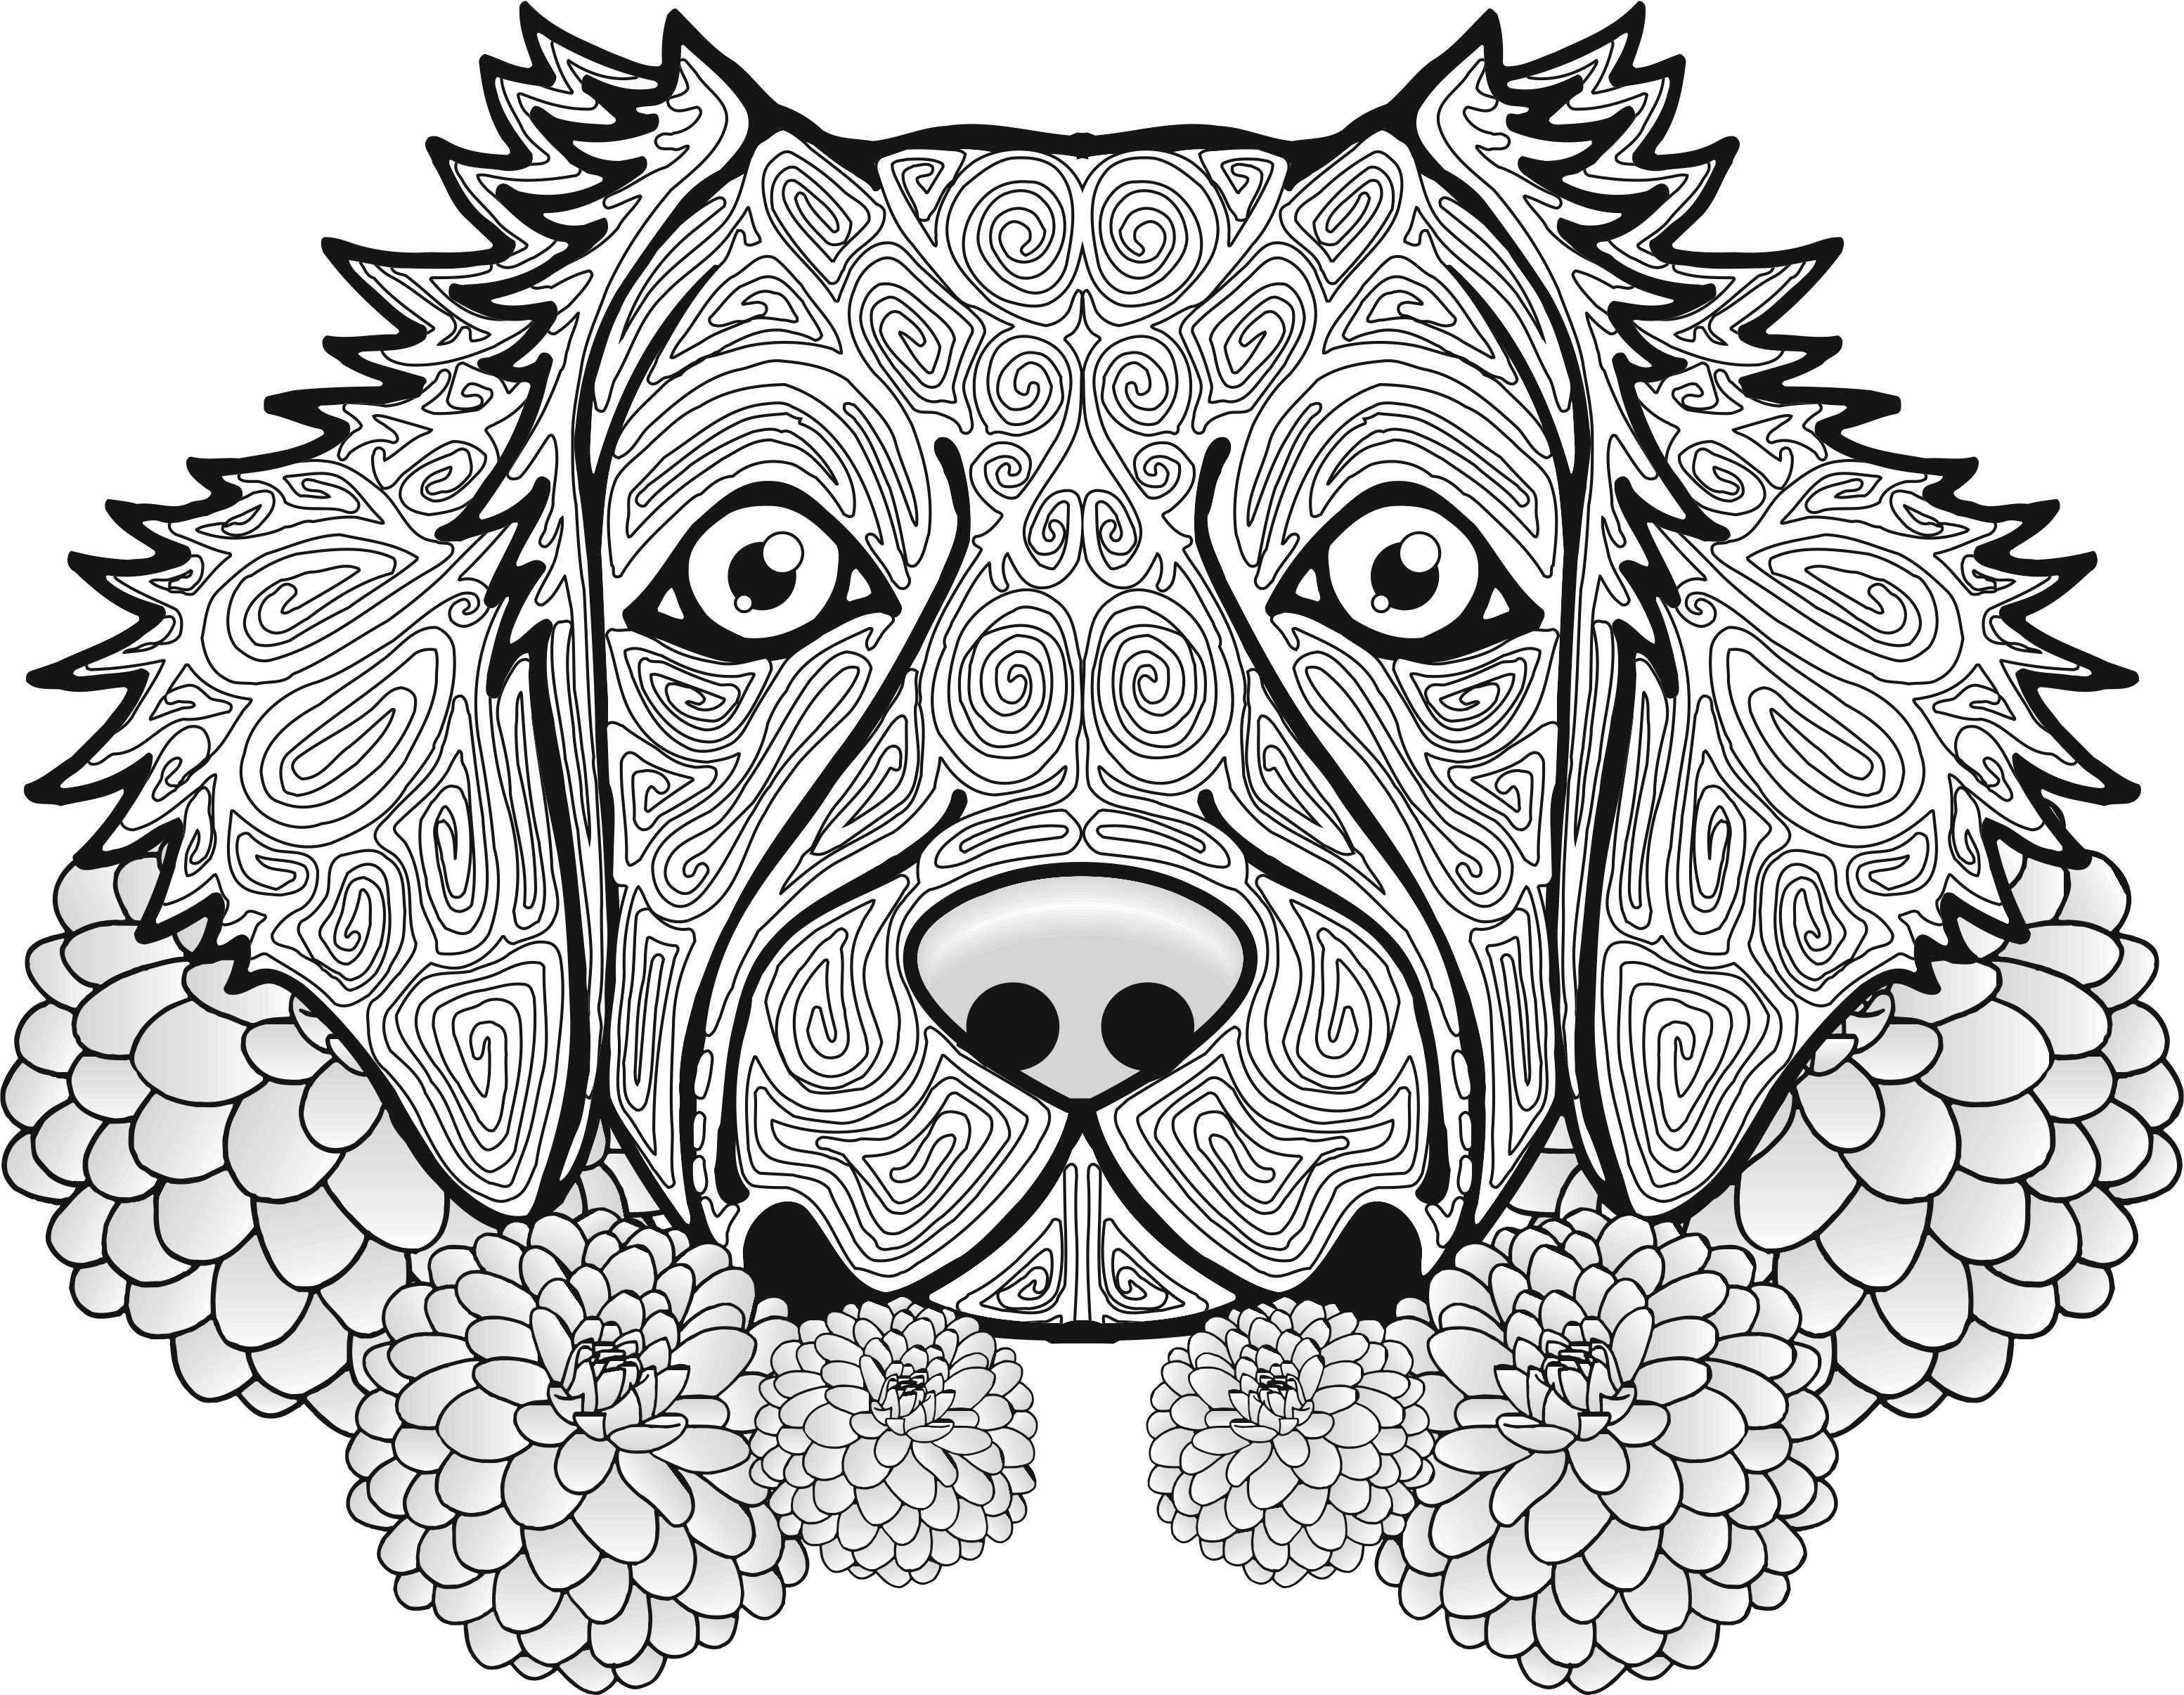 Dog Coloring Page Animal Coloring Pages Coloring Pages [ 2411 x 3107 Pixel ]